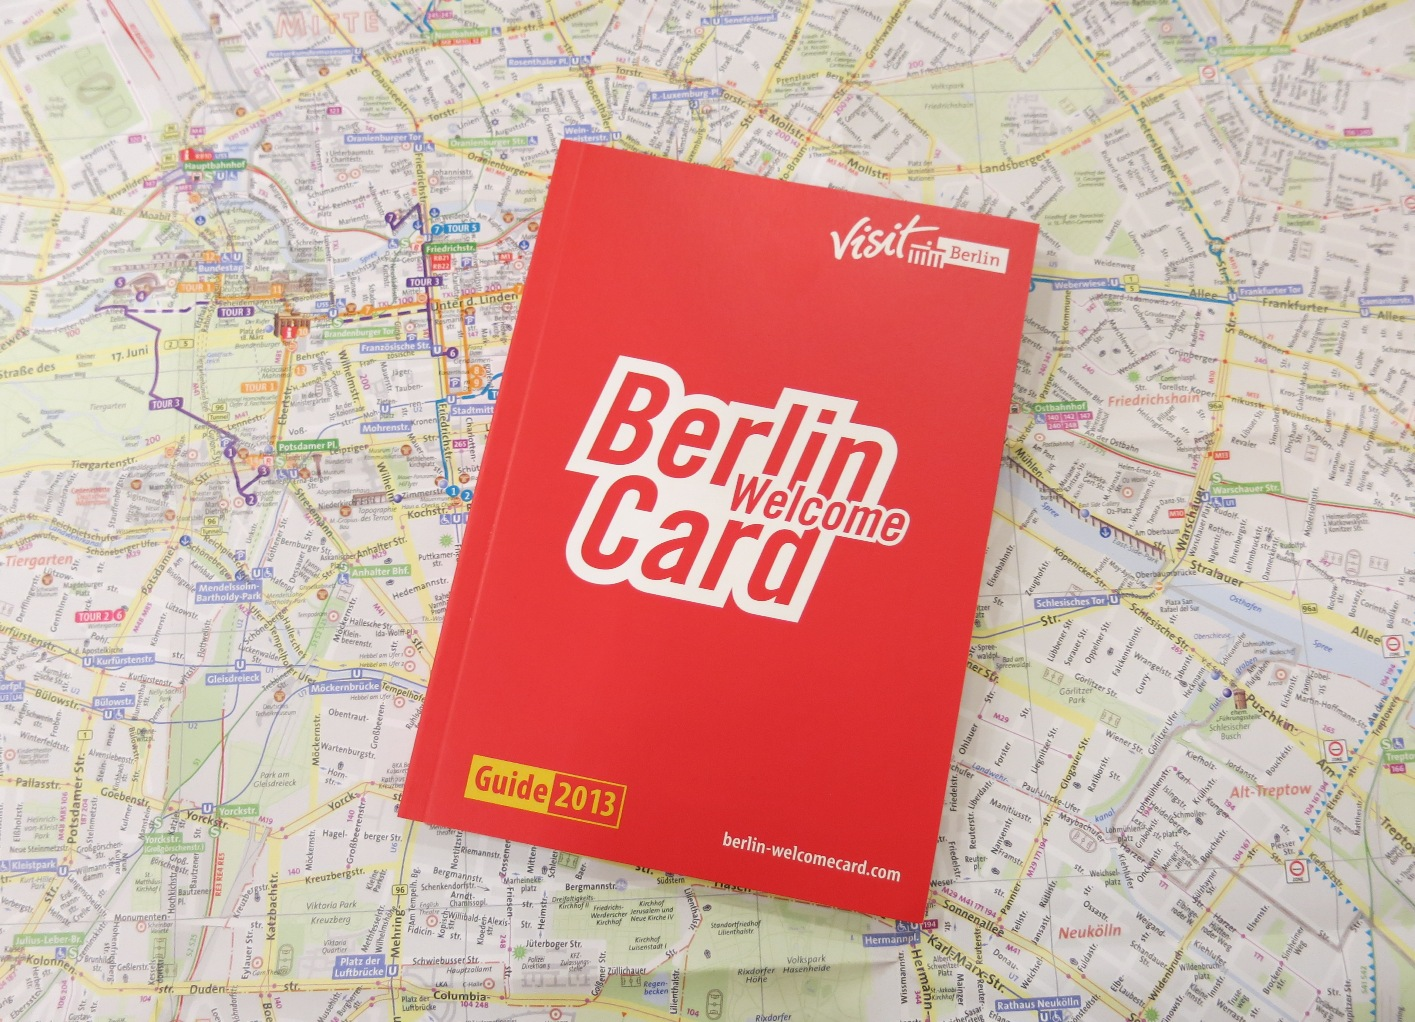 Touristenticket Berlin Welcomecard Hotel Steglitz International